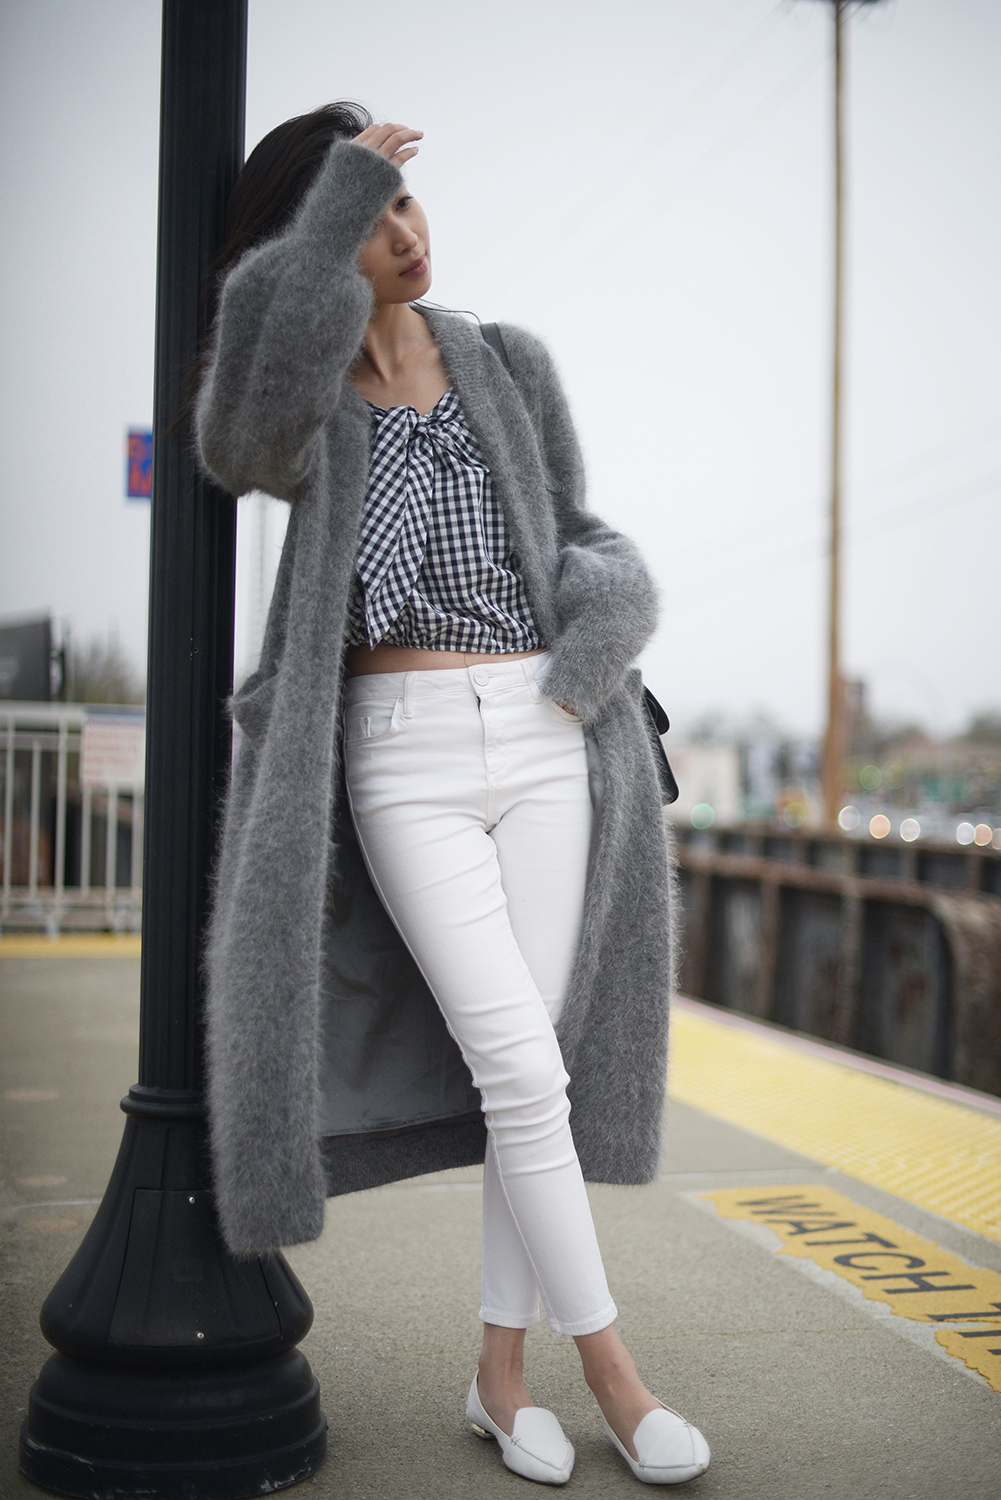 Grey Cardigan Coat with Gingham and White Pants - Off The Grid  63e8552da1a41